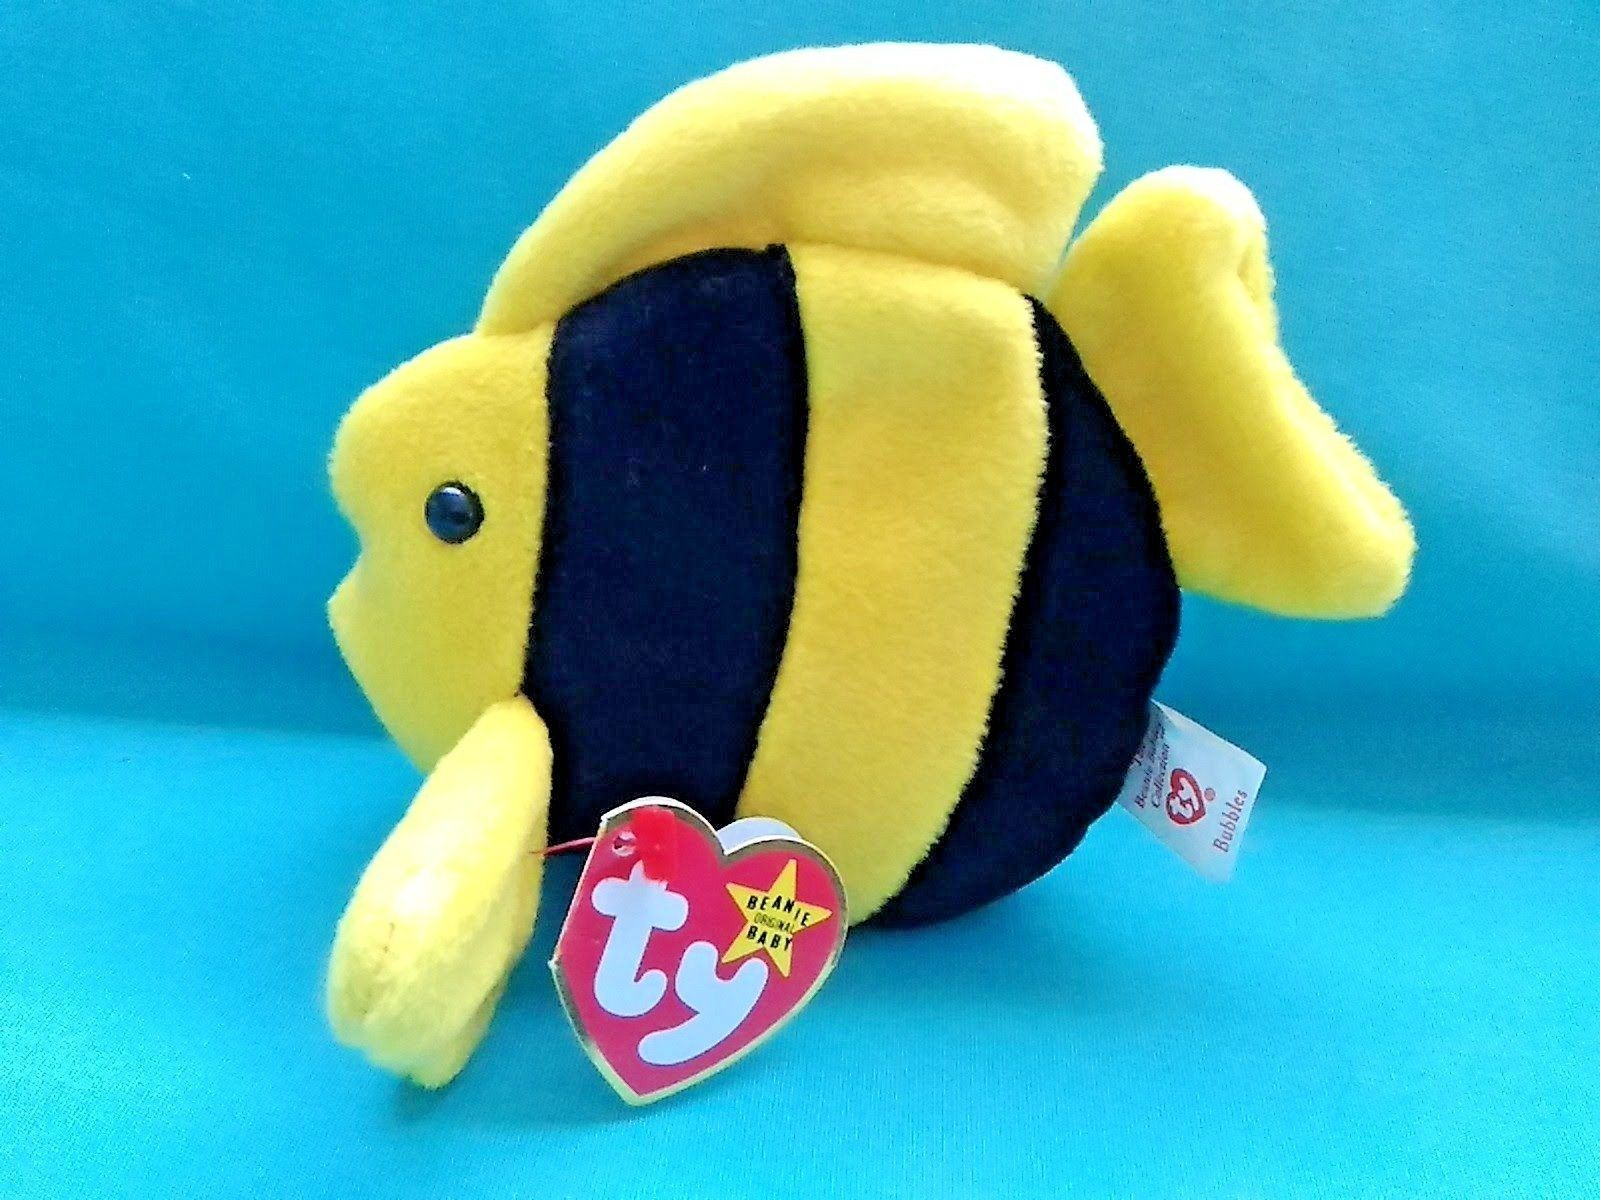 The 20 Expensive Collectible Beanie Babies Will Make You Rich - Most  Valuable Beanie Babies 12545399c72d